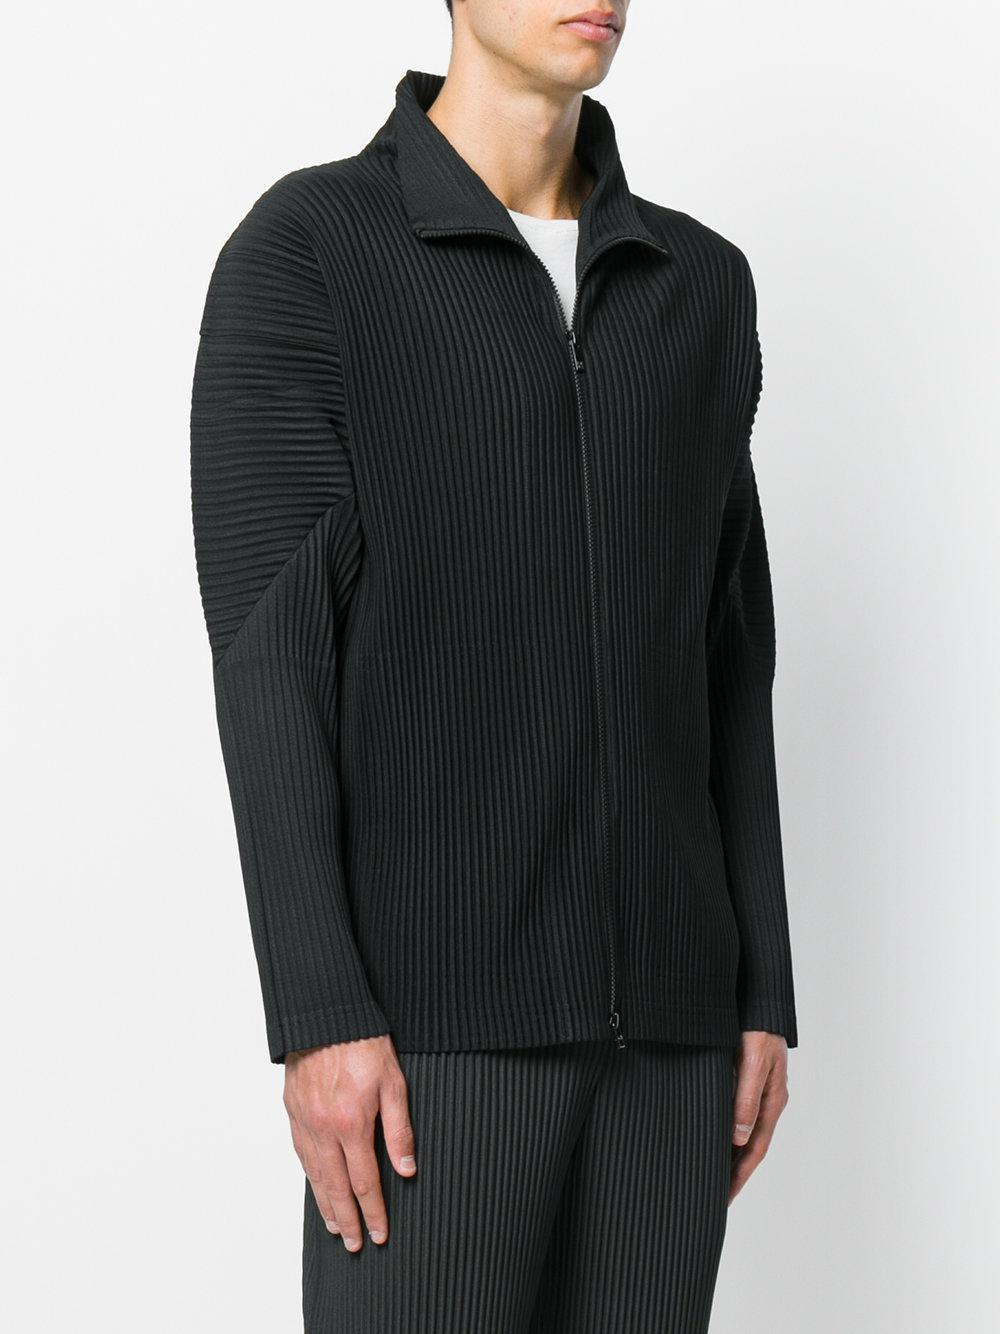 Homme Plissé Issey Miyake Synthetic Rib Knit Zipped Jacket in Black for Men